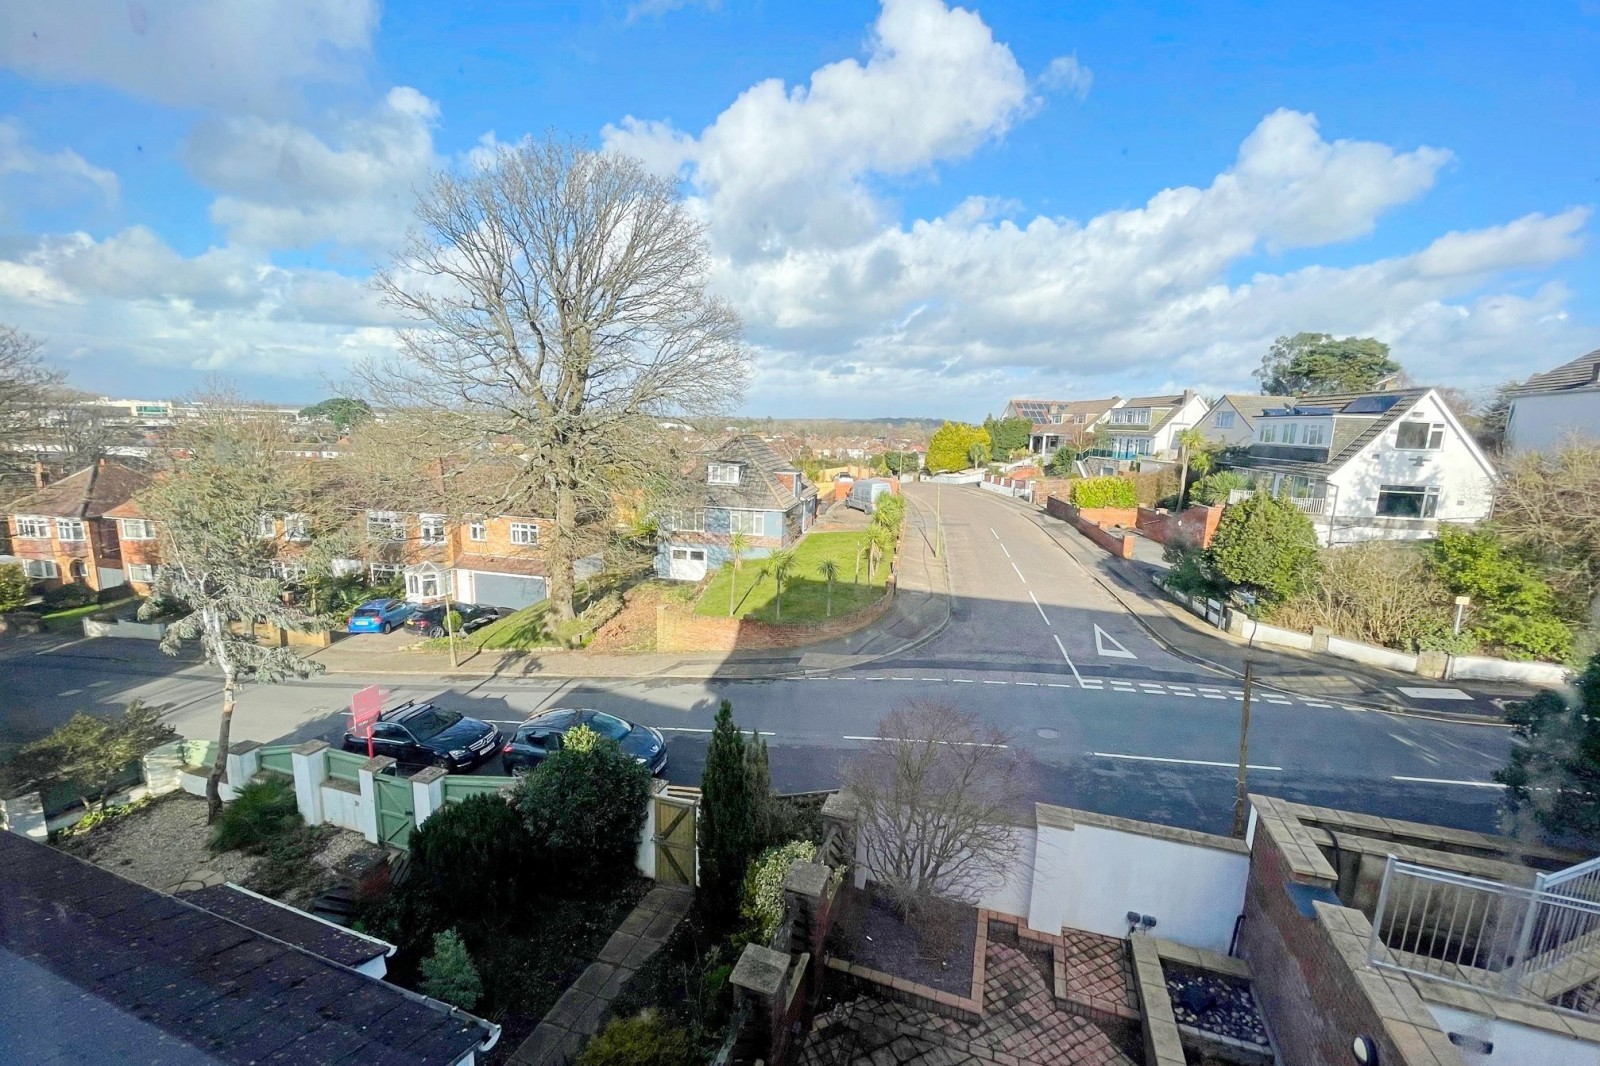 TWO BEDROOM APARTMENT IN NEED OF MODERNISATION